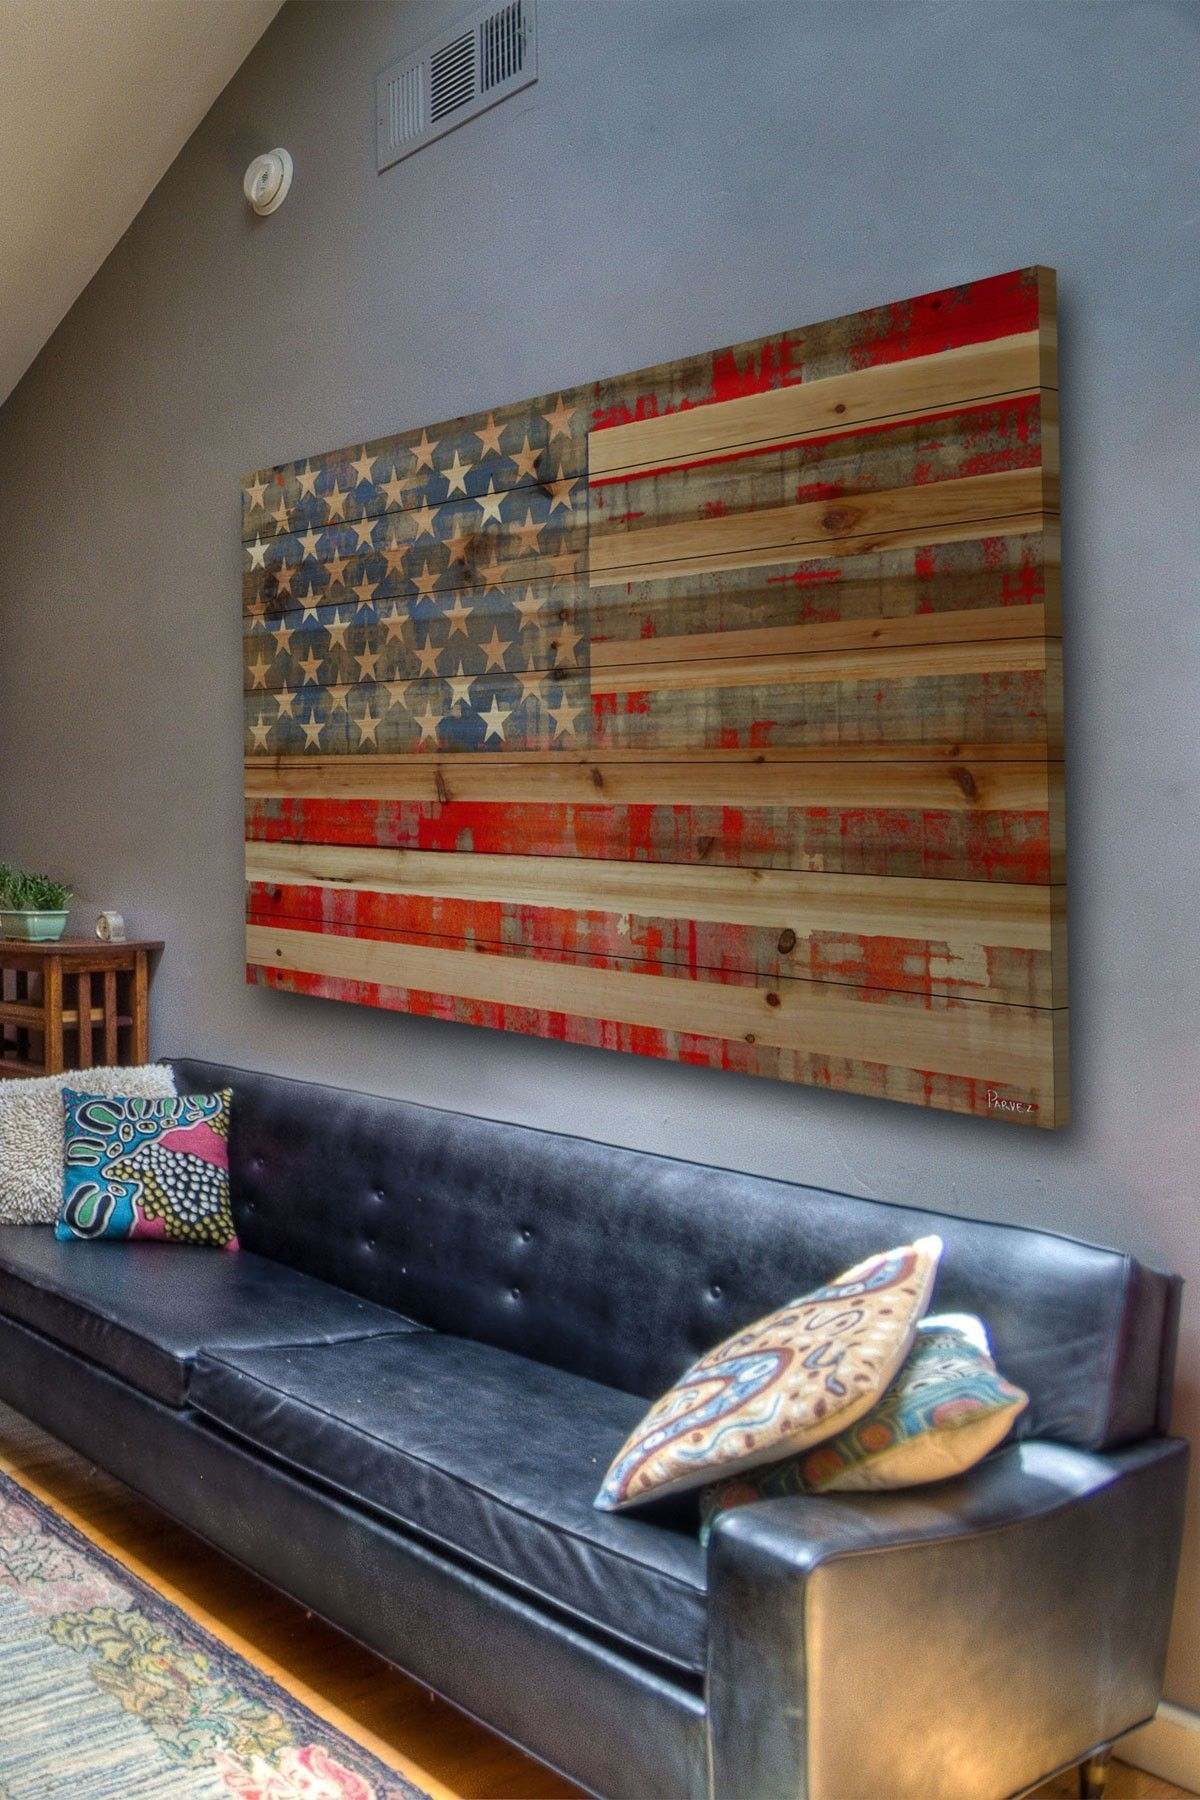 Rustic American Flag Decor Maybe For A Basement Or Lake House Intended For Most Recently Released Rustic American Flag Wall Art (Gallery 2 of 20)